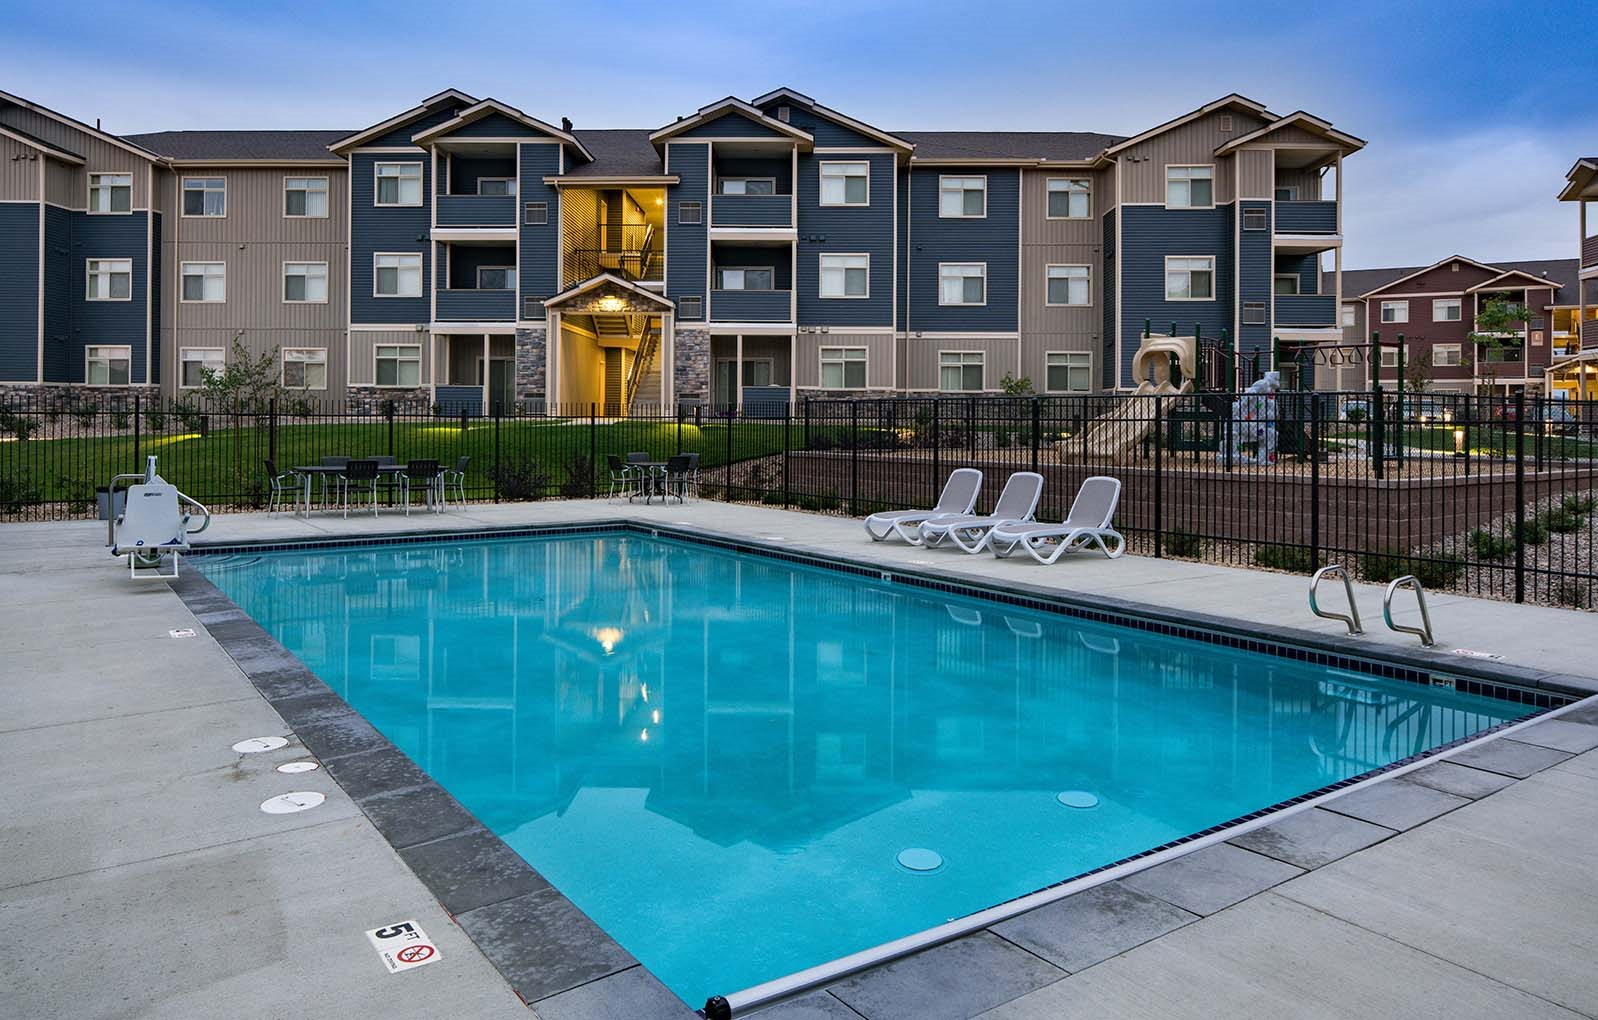 Pool with lounge chairs and apt buildings Colorado Springs, CO 80908 | Copper Range Apartment Homes